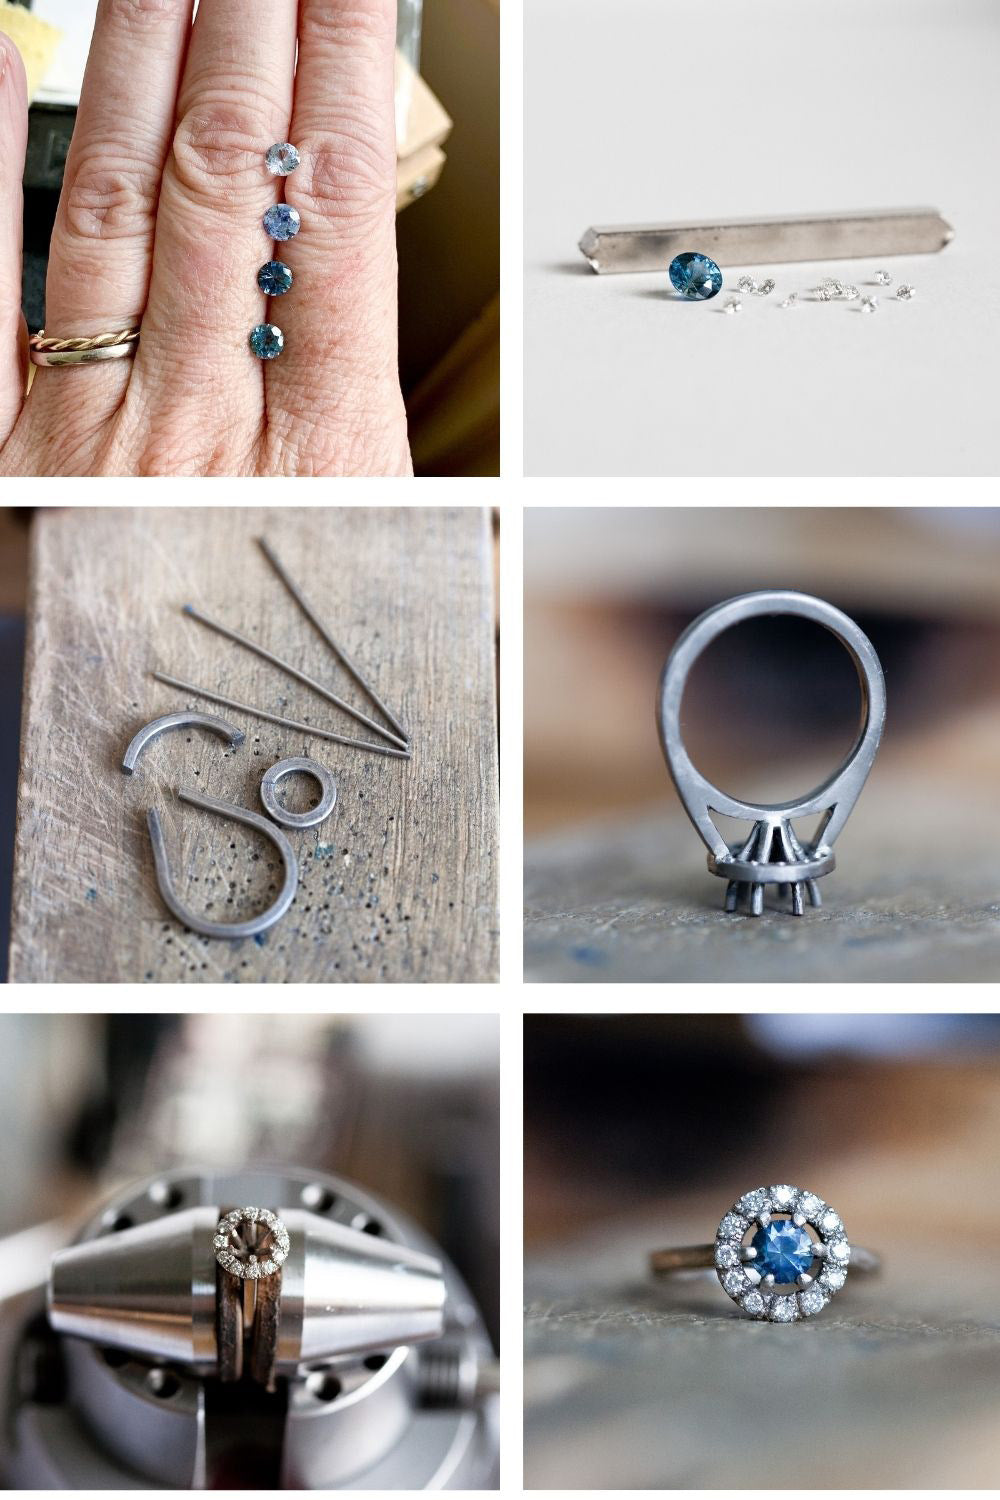 Sapphire and diamond halo ring in the making